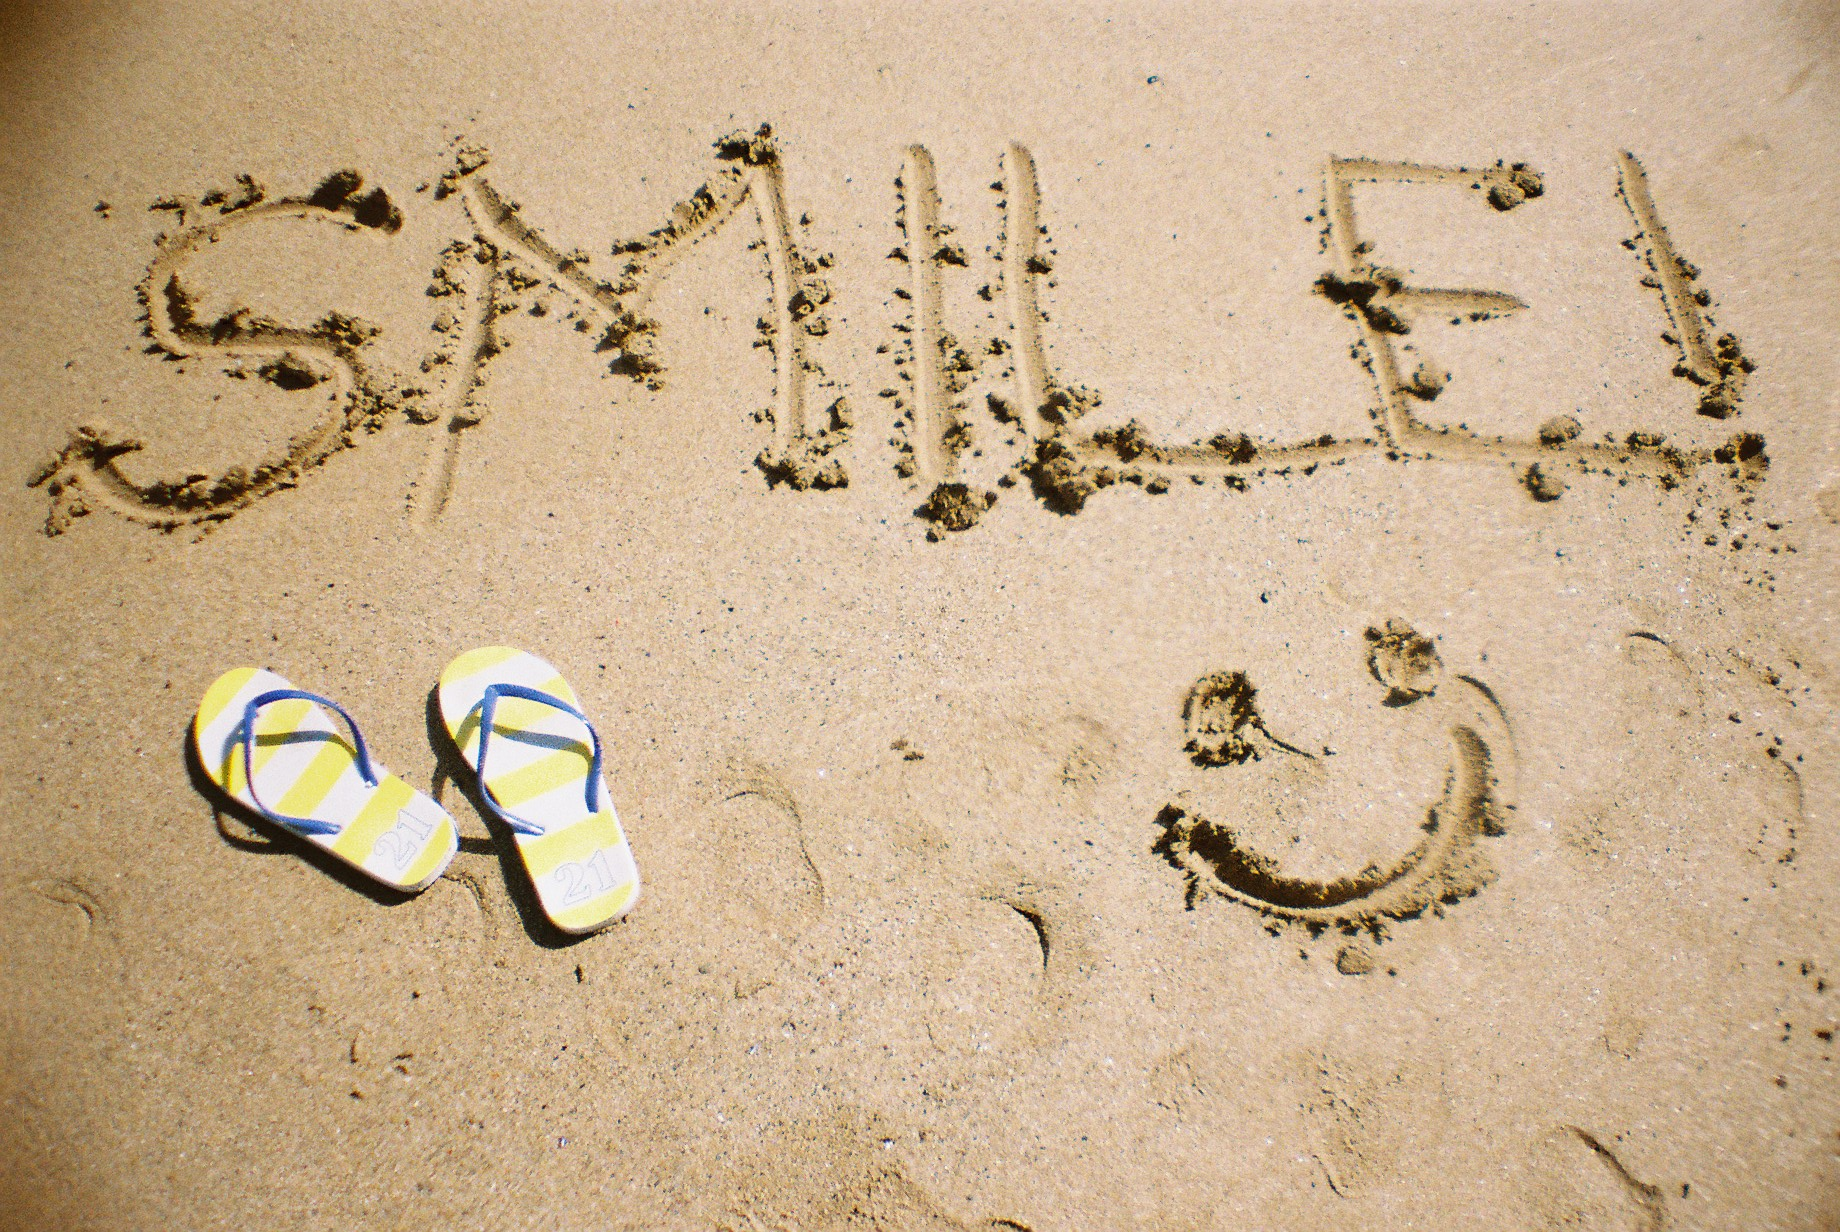 'Smile' written in the sand